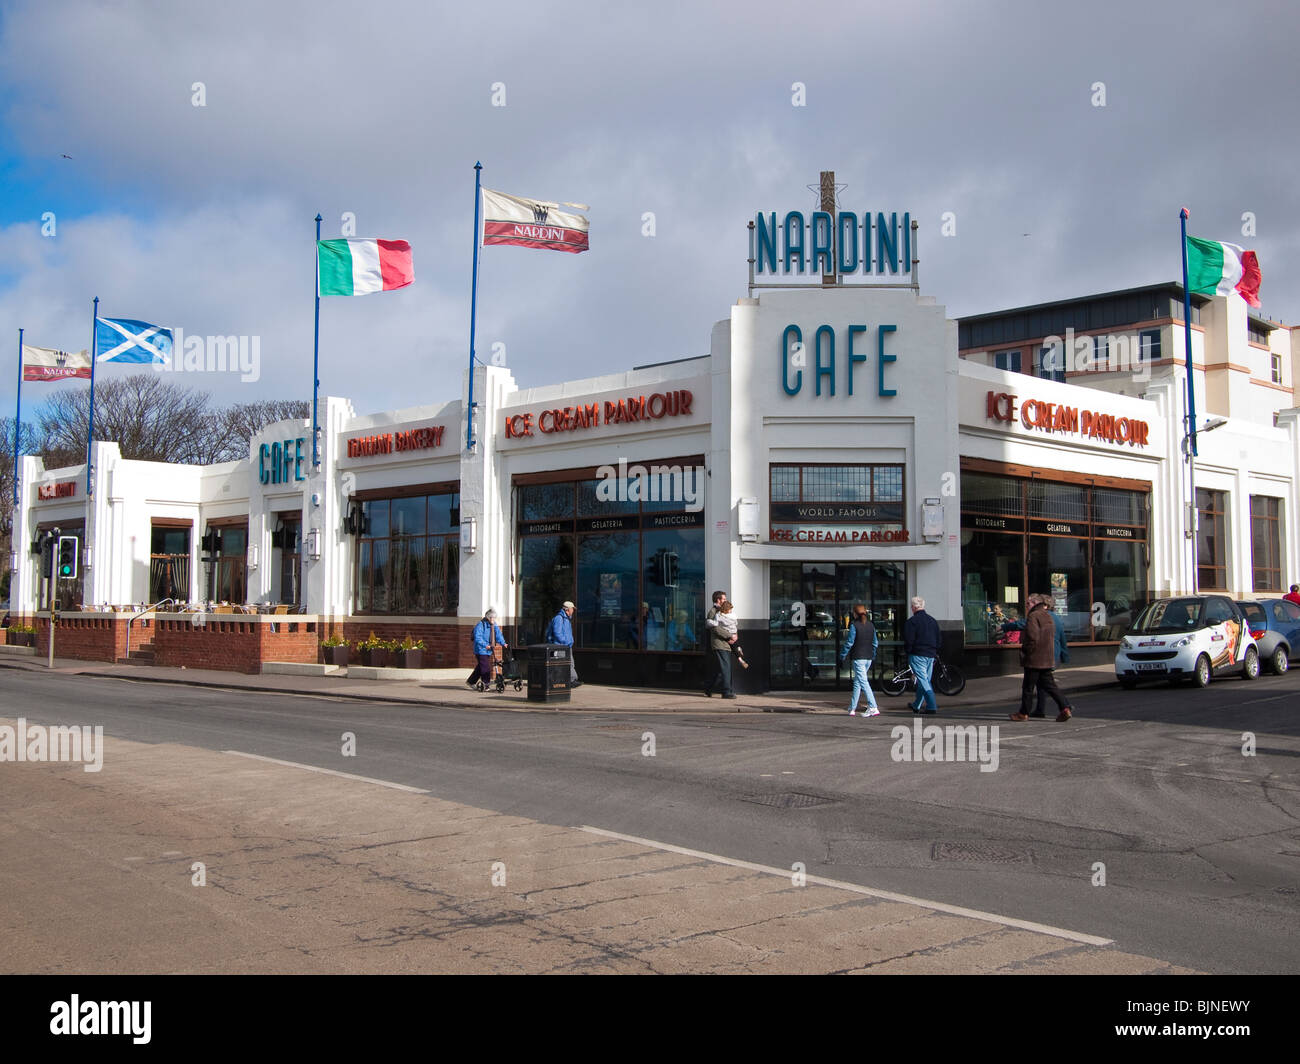 Nardinis Cafe, Largs, Scotland - Stock Image